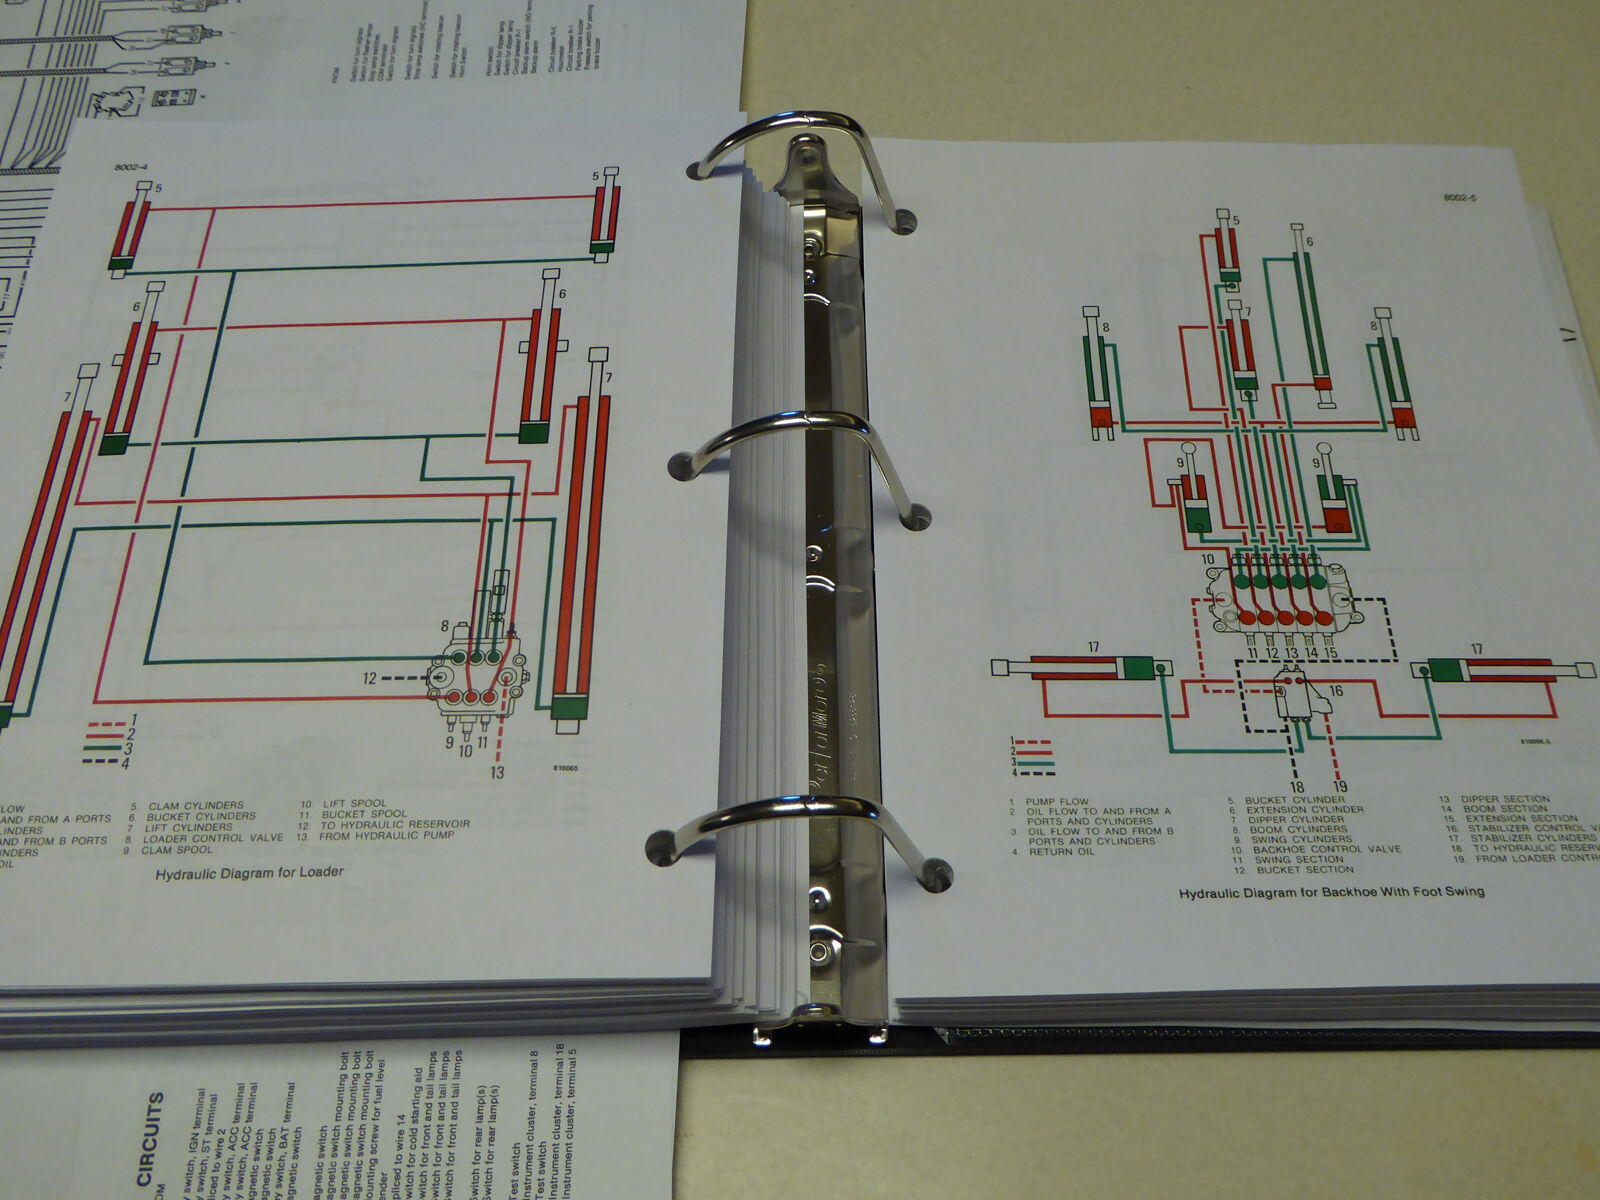 hight resolution of 580k wiring diagram wiring library electrical wiring diagrams case 580e 580se 580 super e loader backhoe